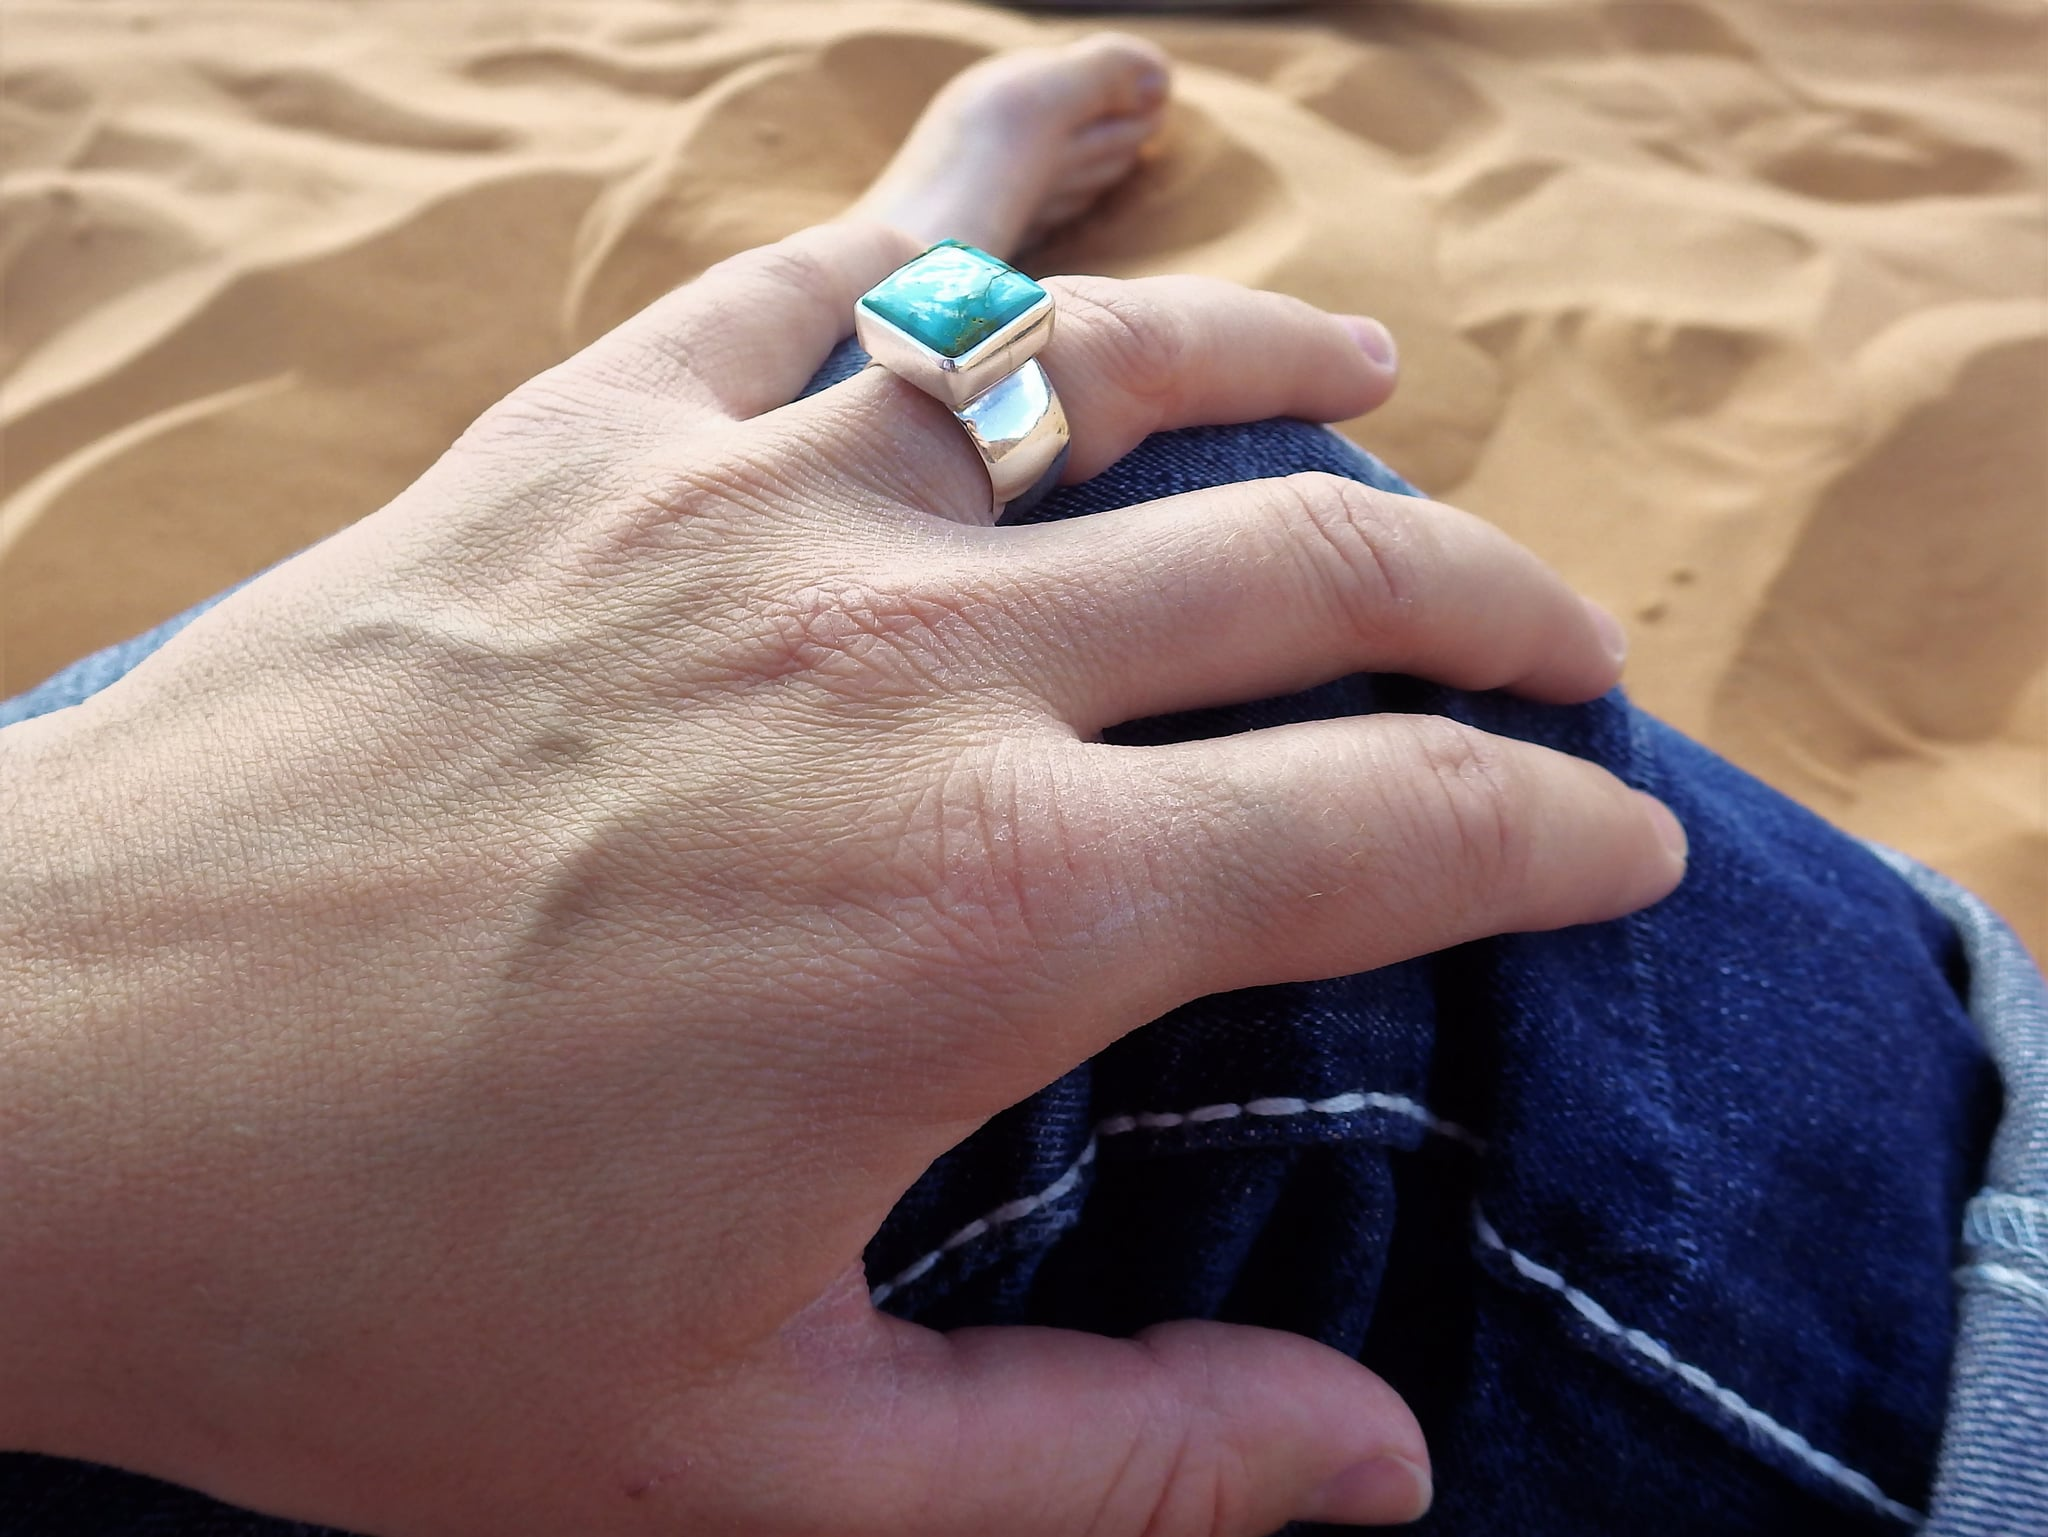 Why I Wear A Turquoise Wedding Ring Instead Of My Diamond